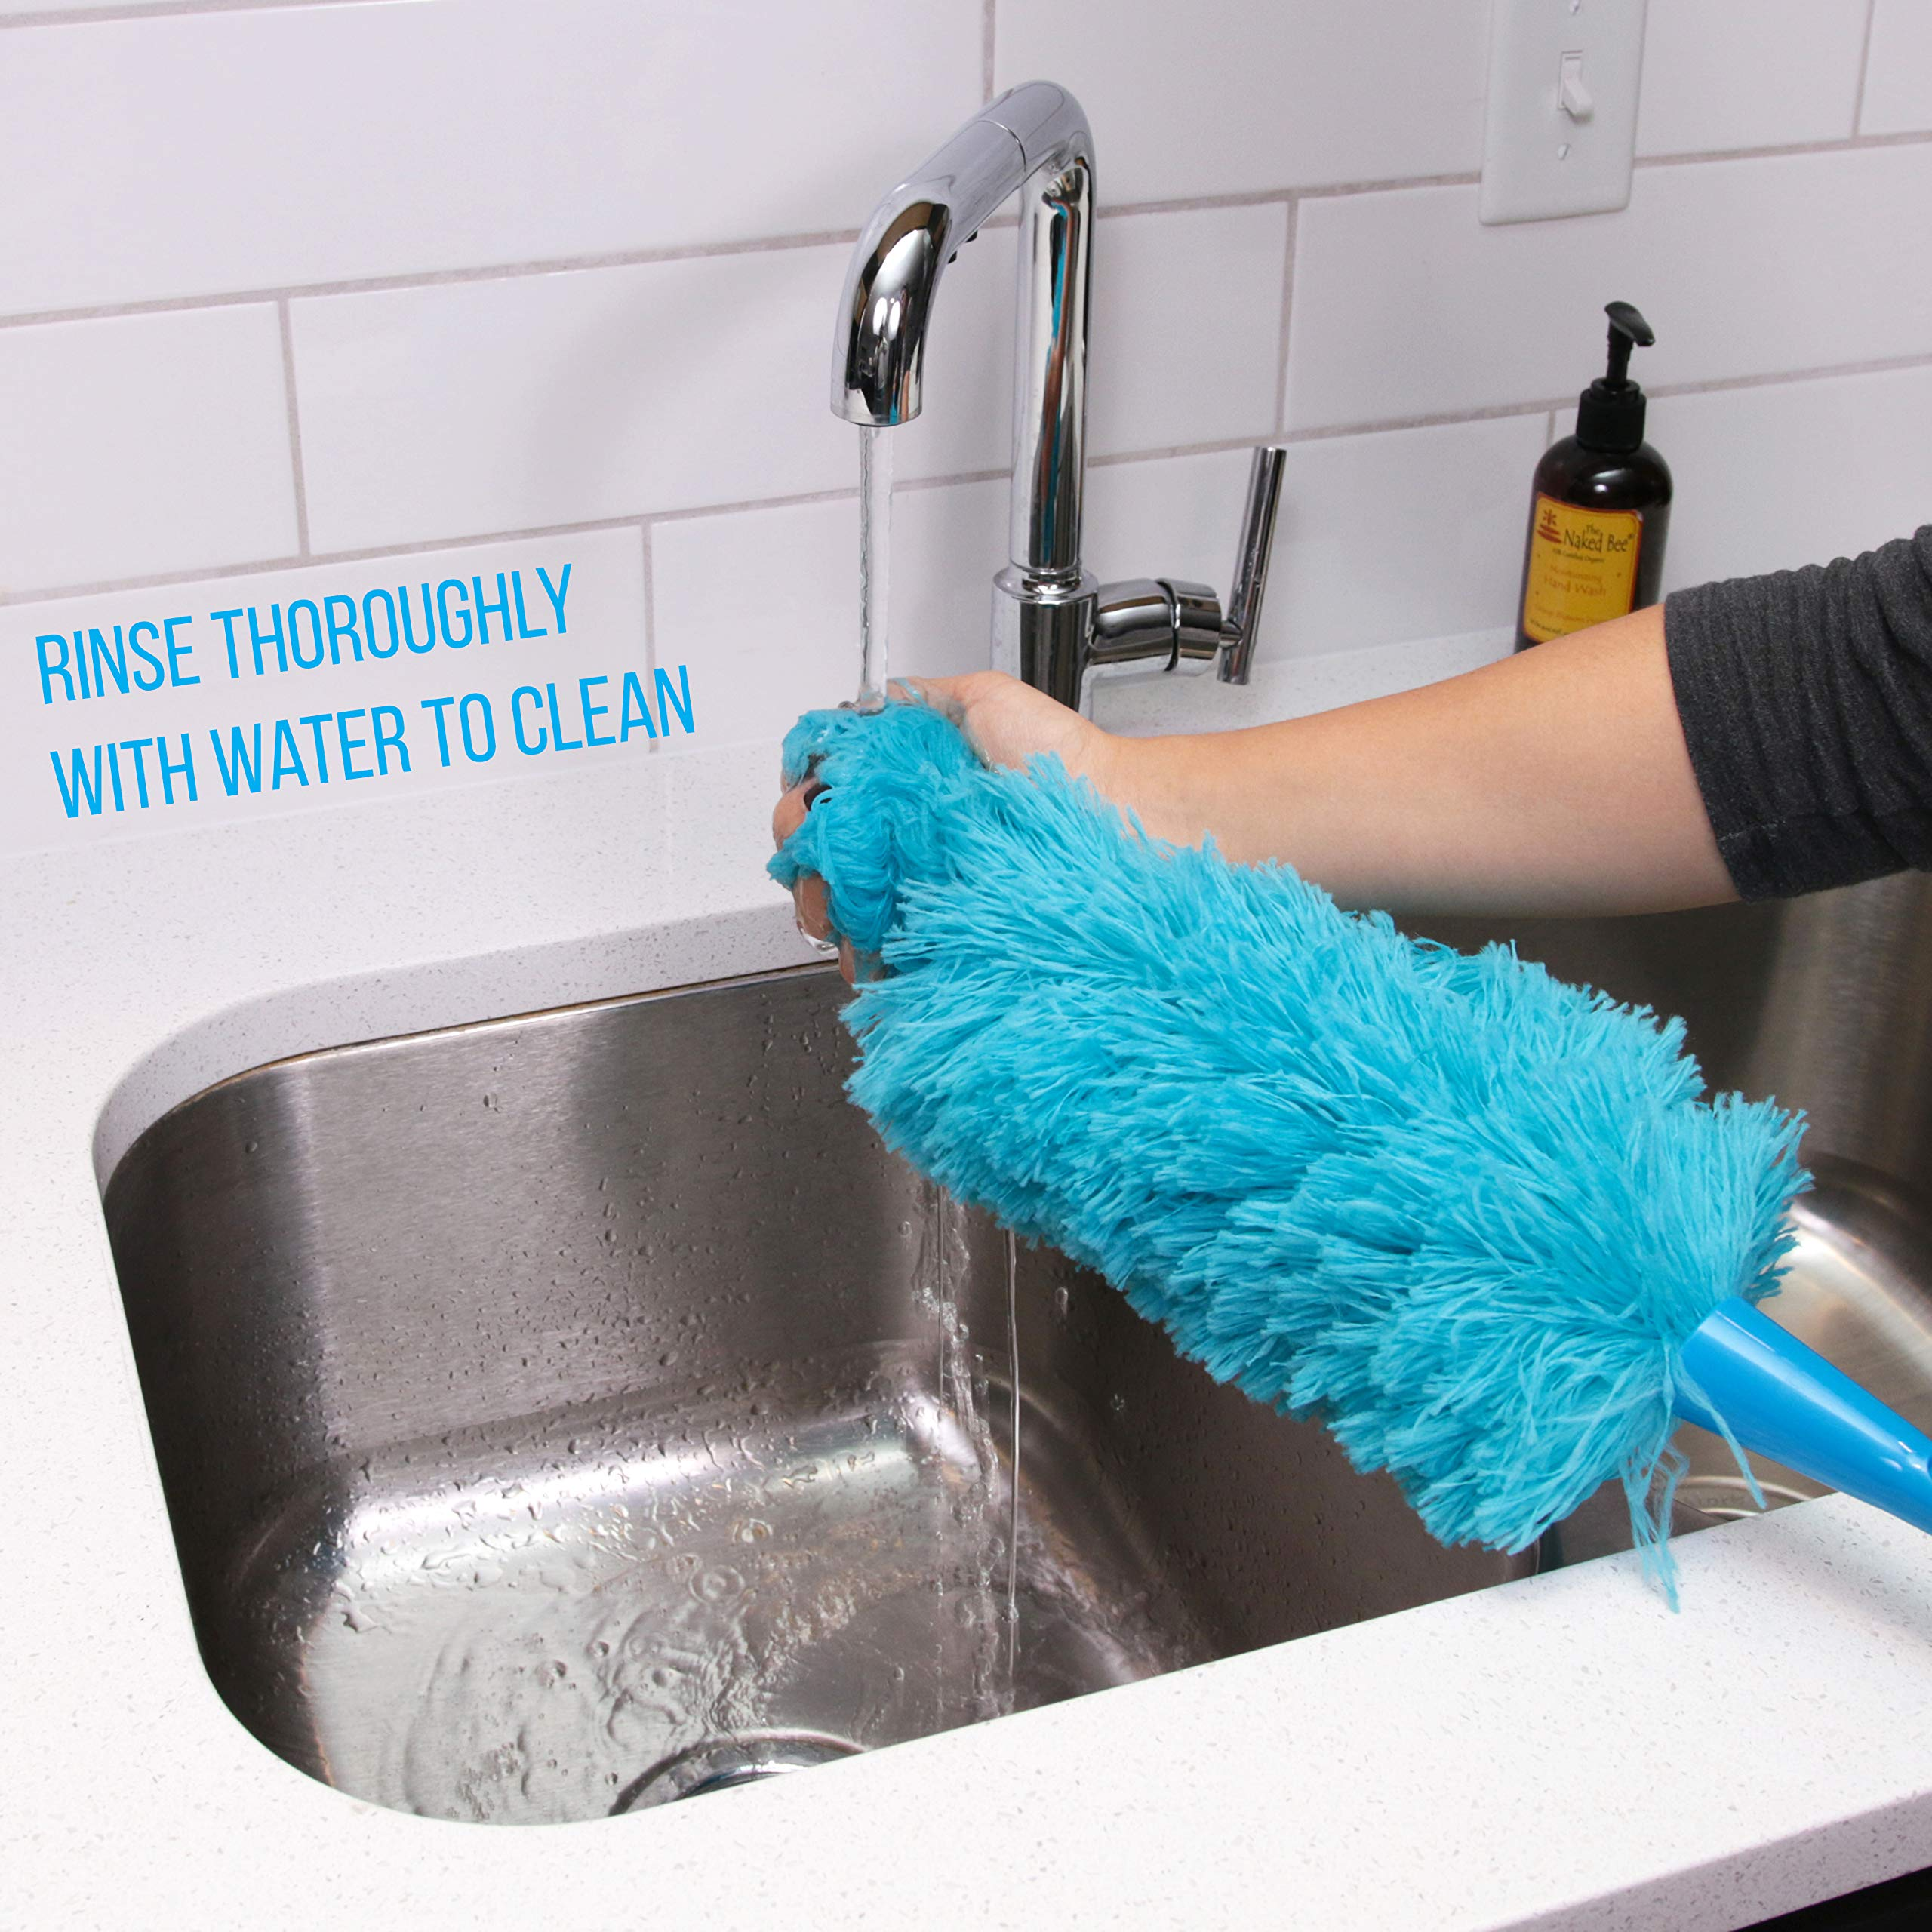 Hank HouseHold TriboDuster with Bonus Blinds Cleaner - Microfiber Duster for Cleaning with Extendable Telescoping Pole Up to 5ft6''! Ceiling Fan Dusters, Cobweb/Spider Web Brush and Blind Duster by Hank HouseHold (Image #5)